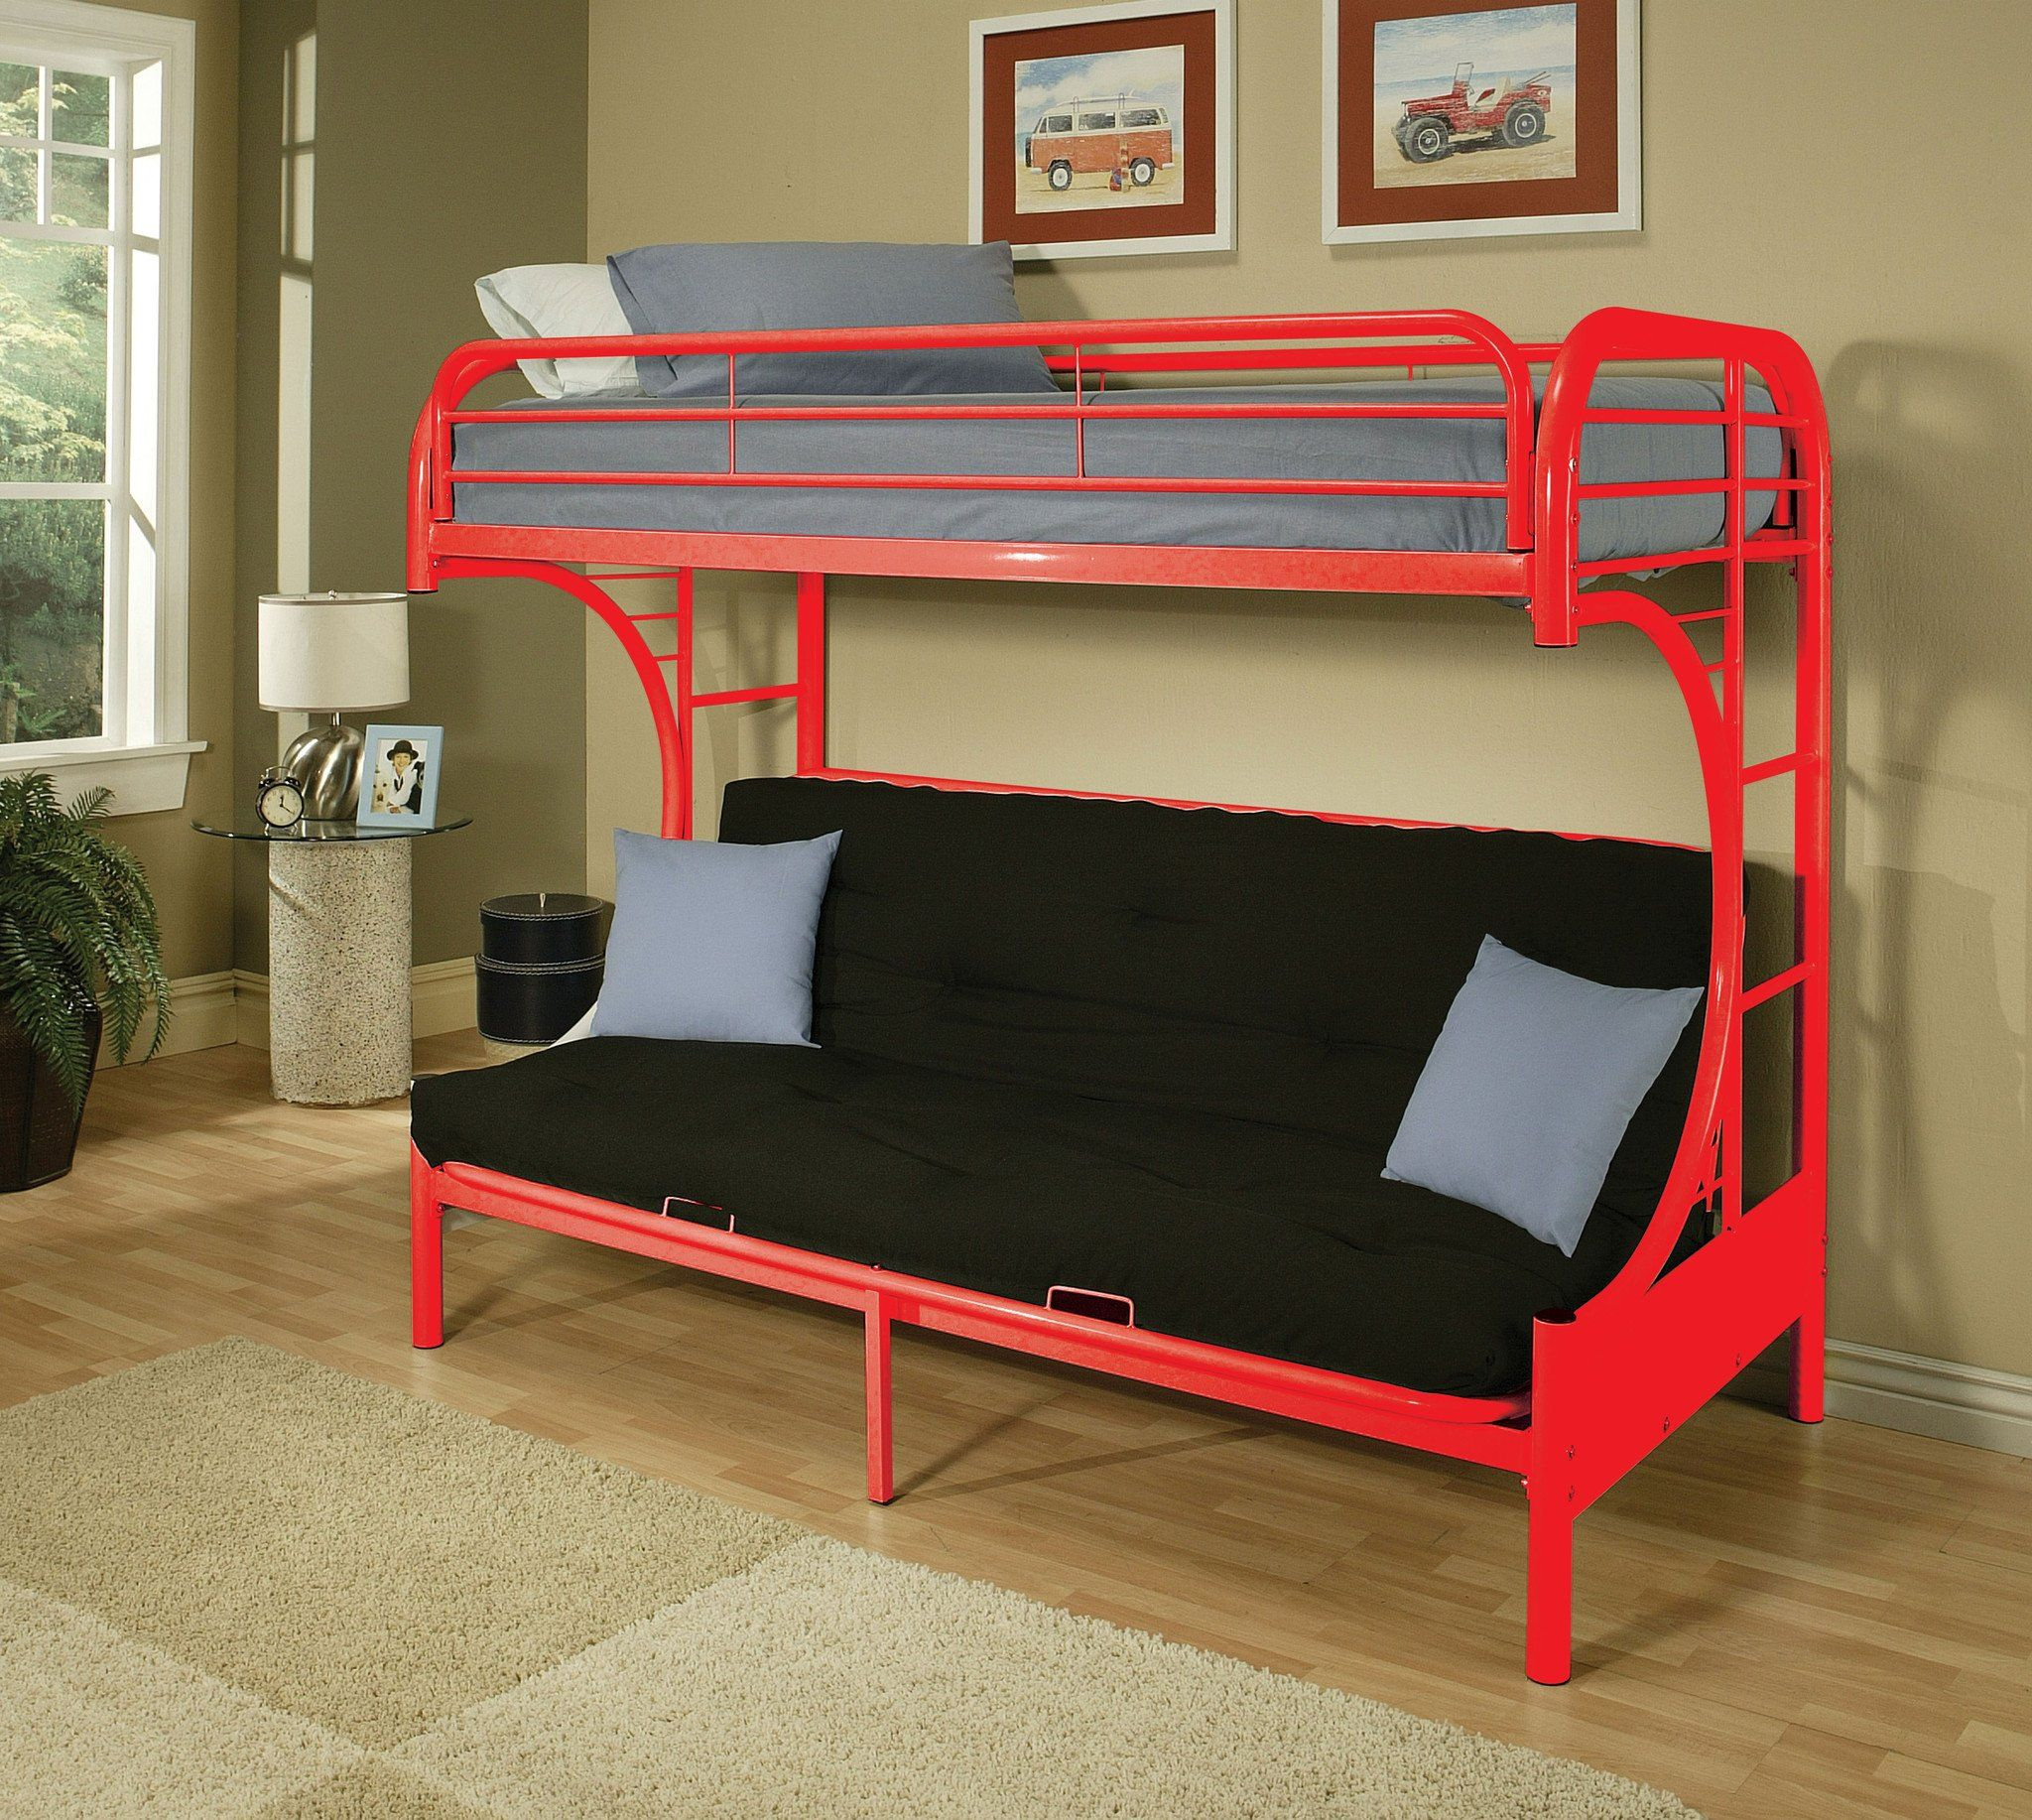 acme eclipse twin full futon bunk bed red   02091w rd acme eclipse twin full futon bunk bed red   02091w rd   futon bunk      rh   pinterest